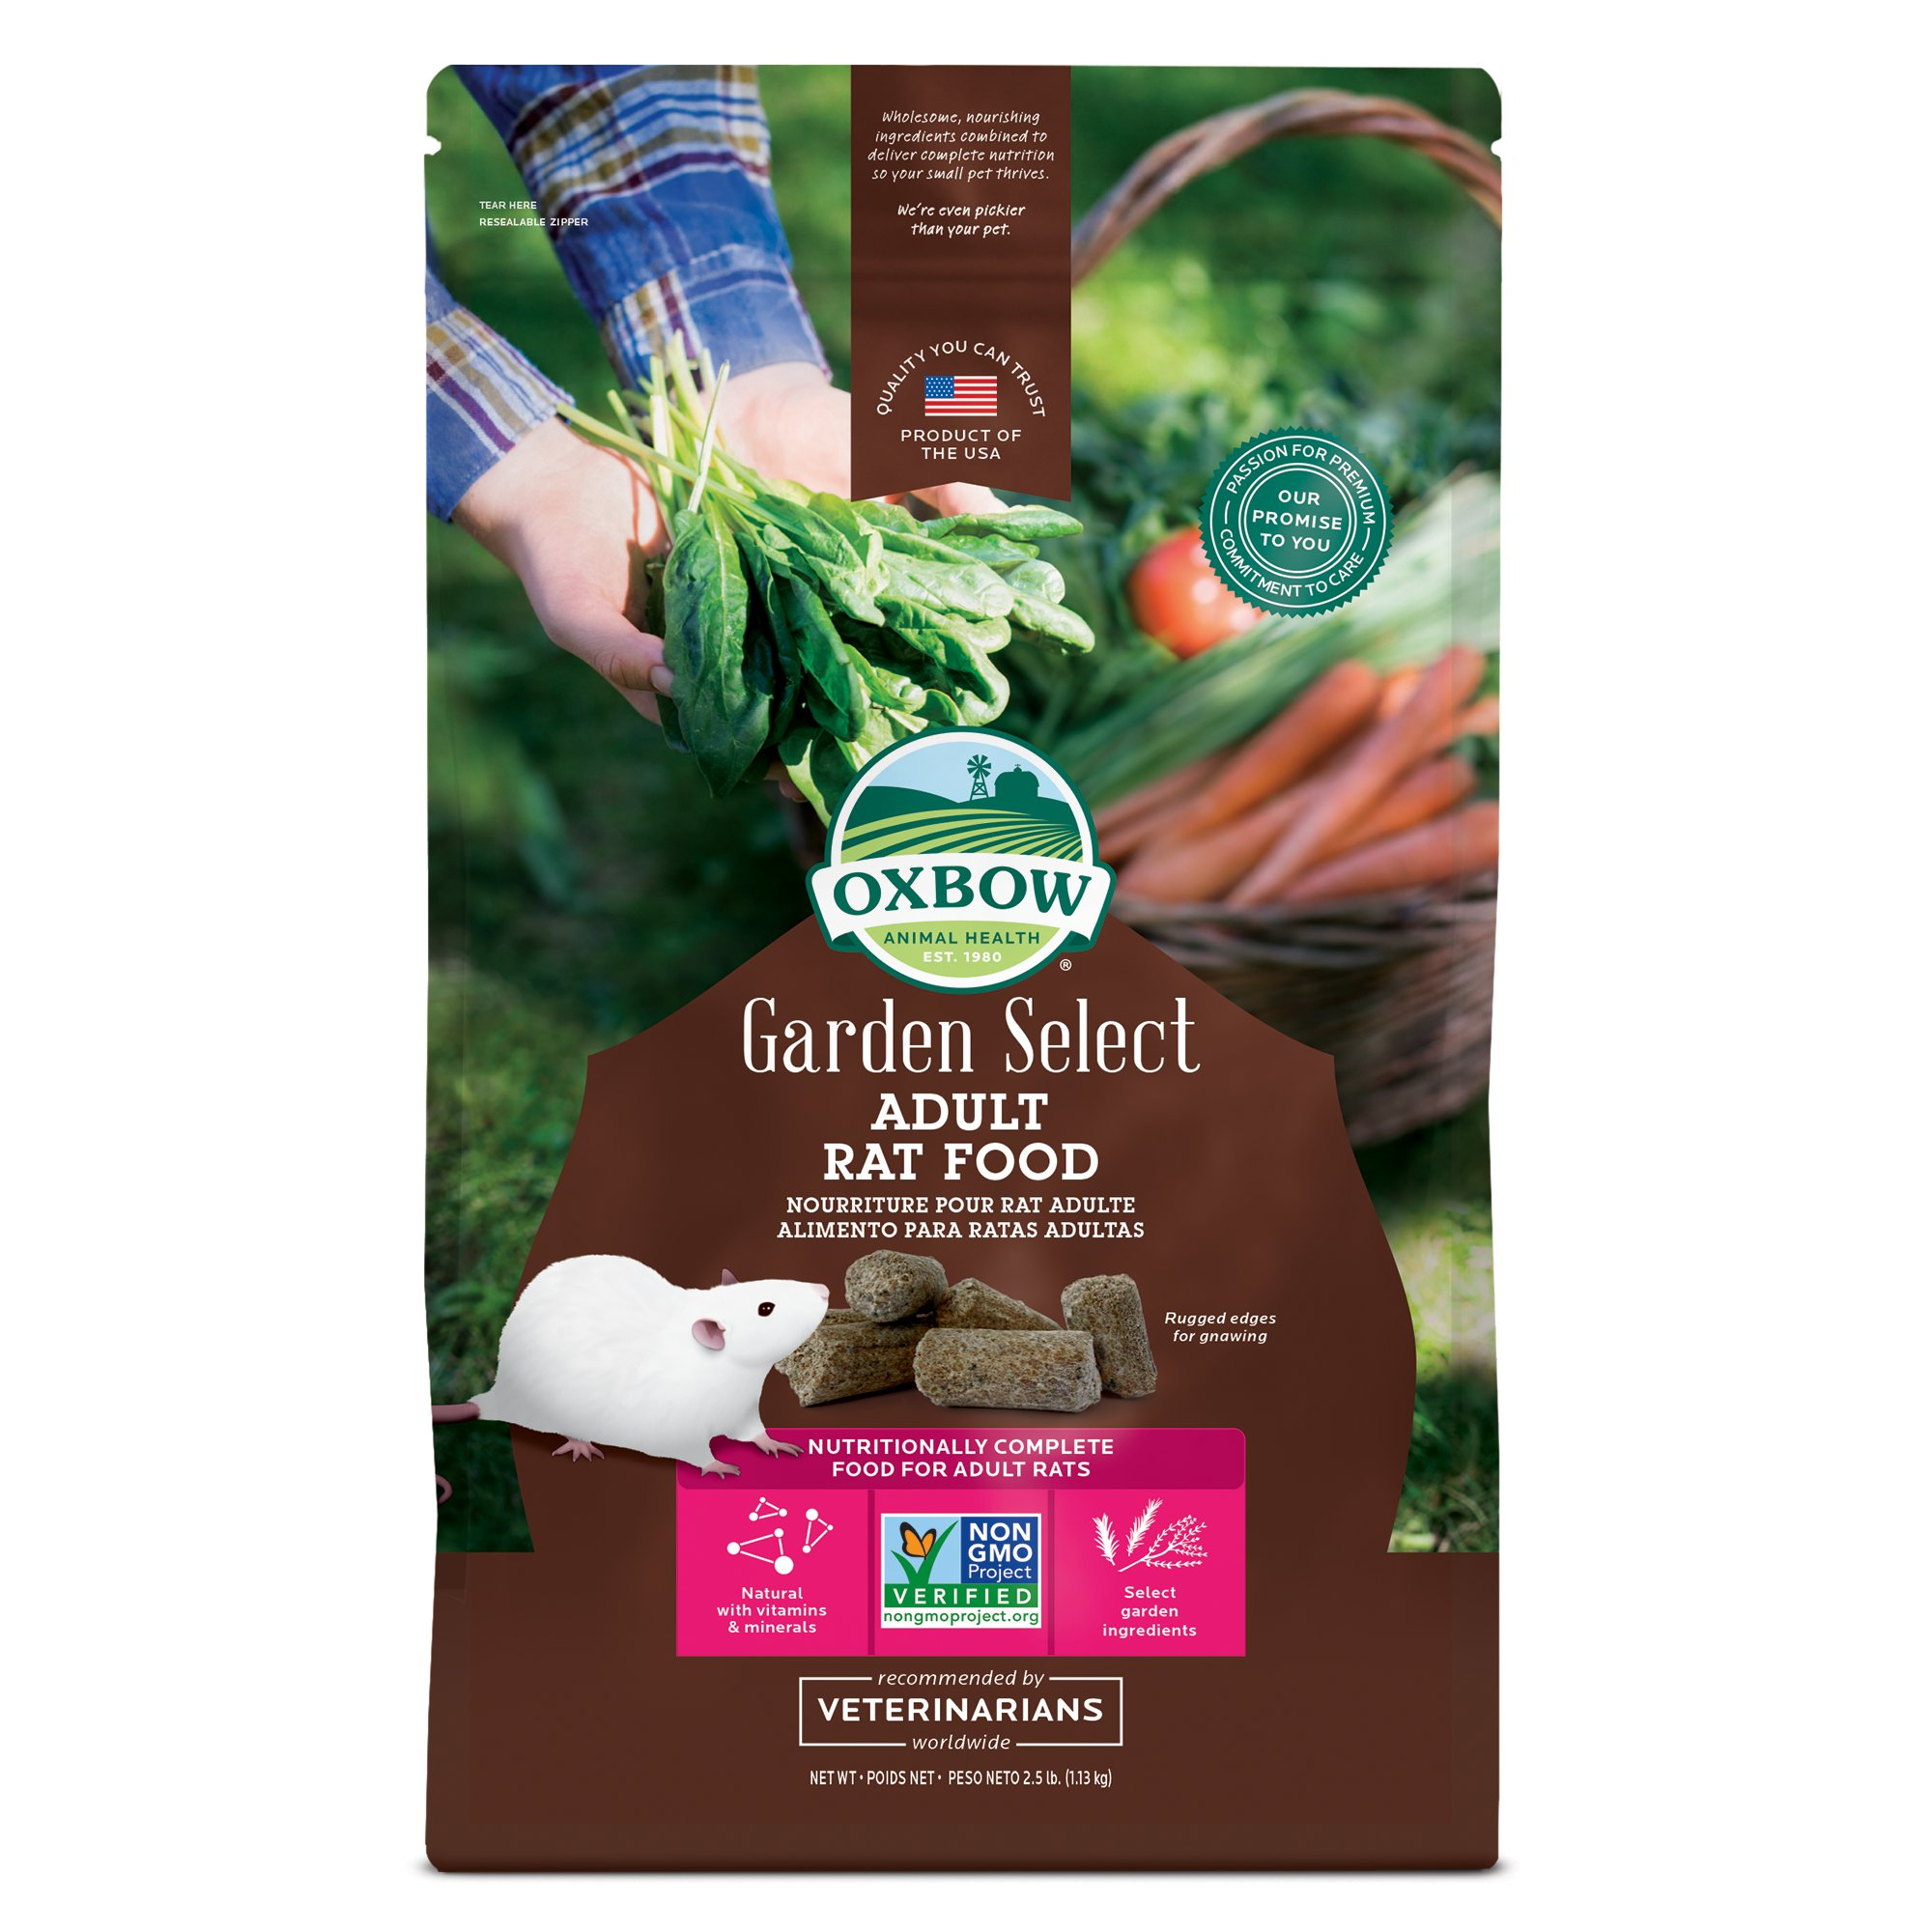 Oxbow Garden Select Fortified Food for Rats | Petco